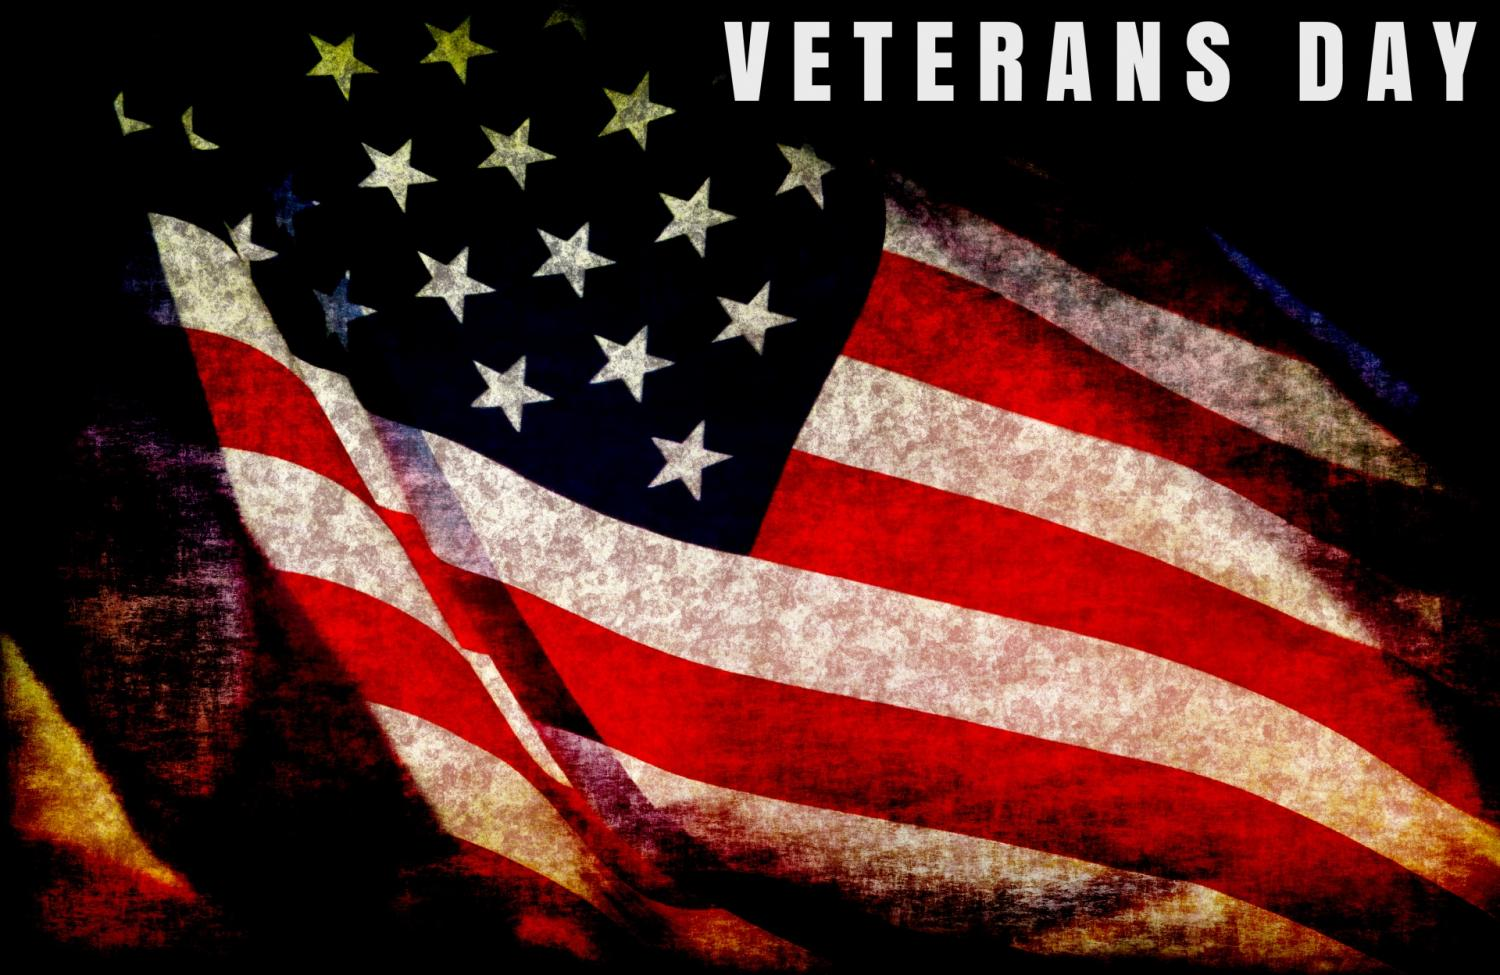 Veterans Day is a  national holiday celebrated in the United States annually on November 11th.